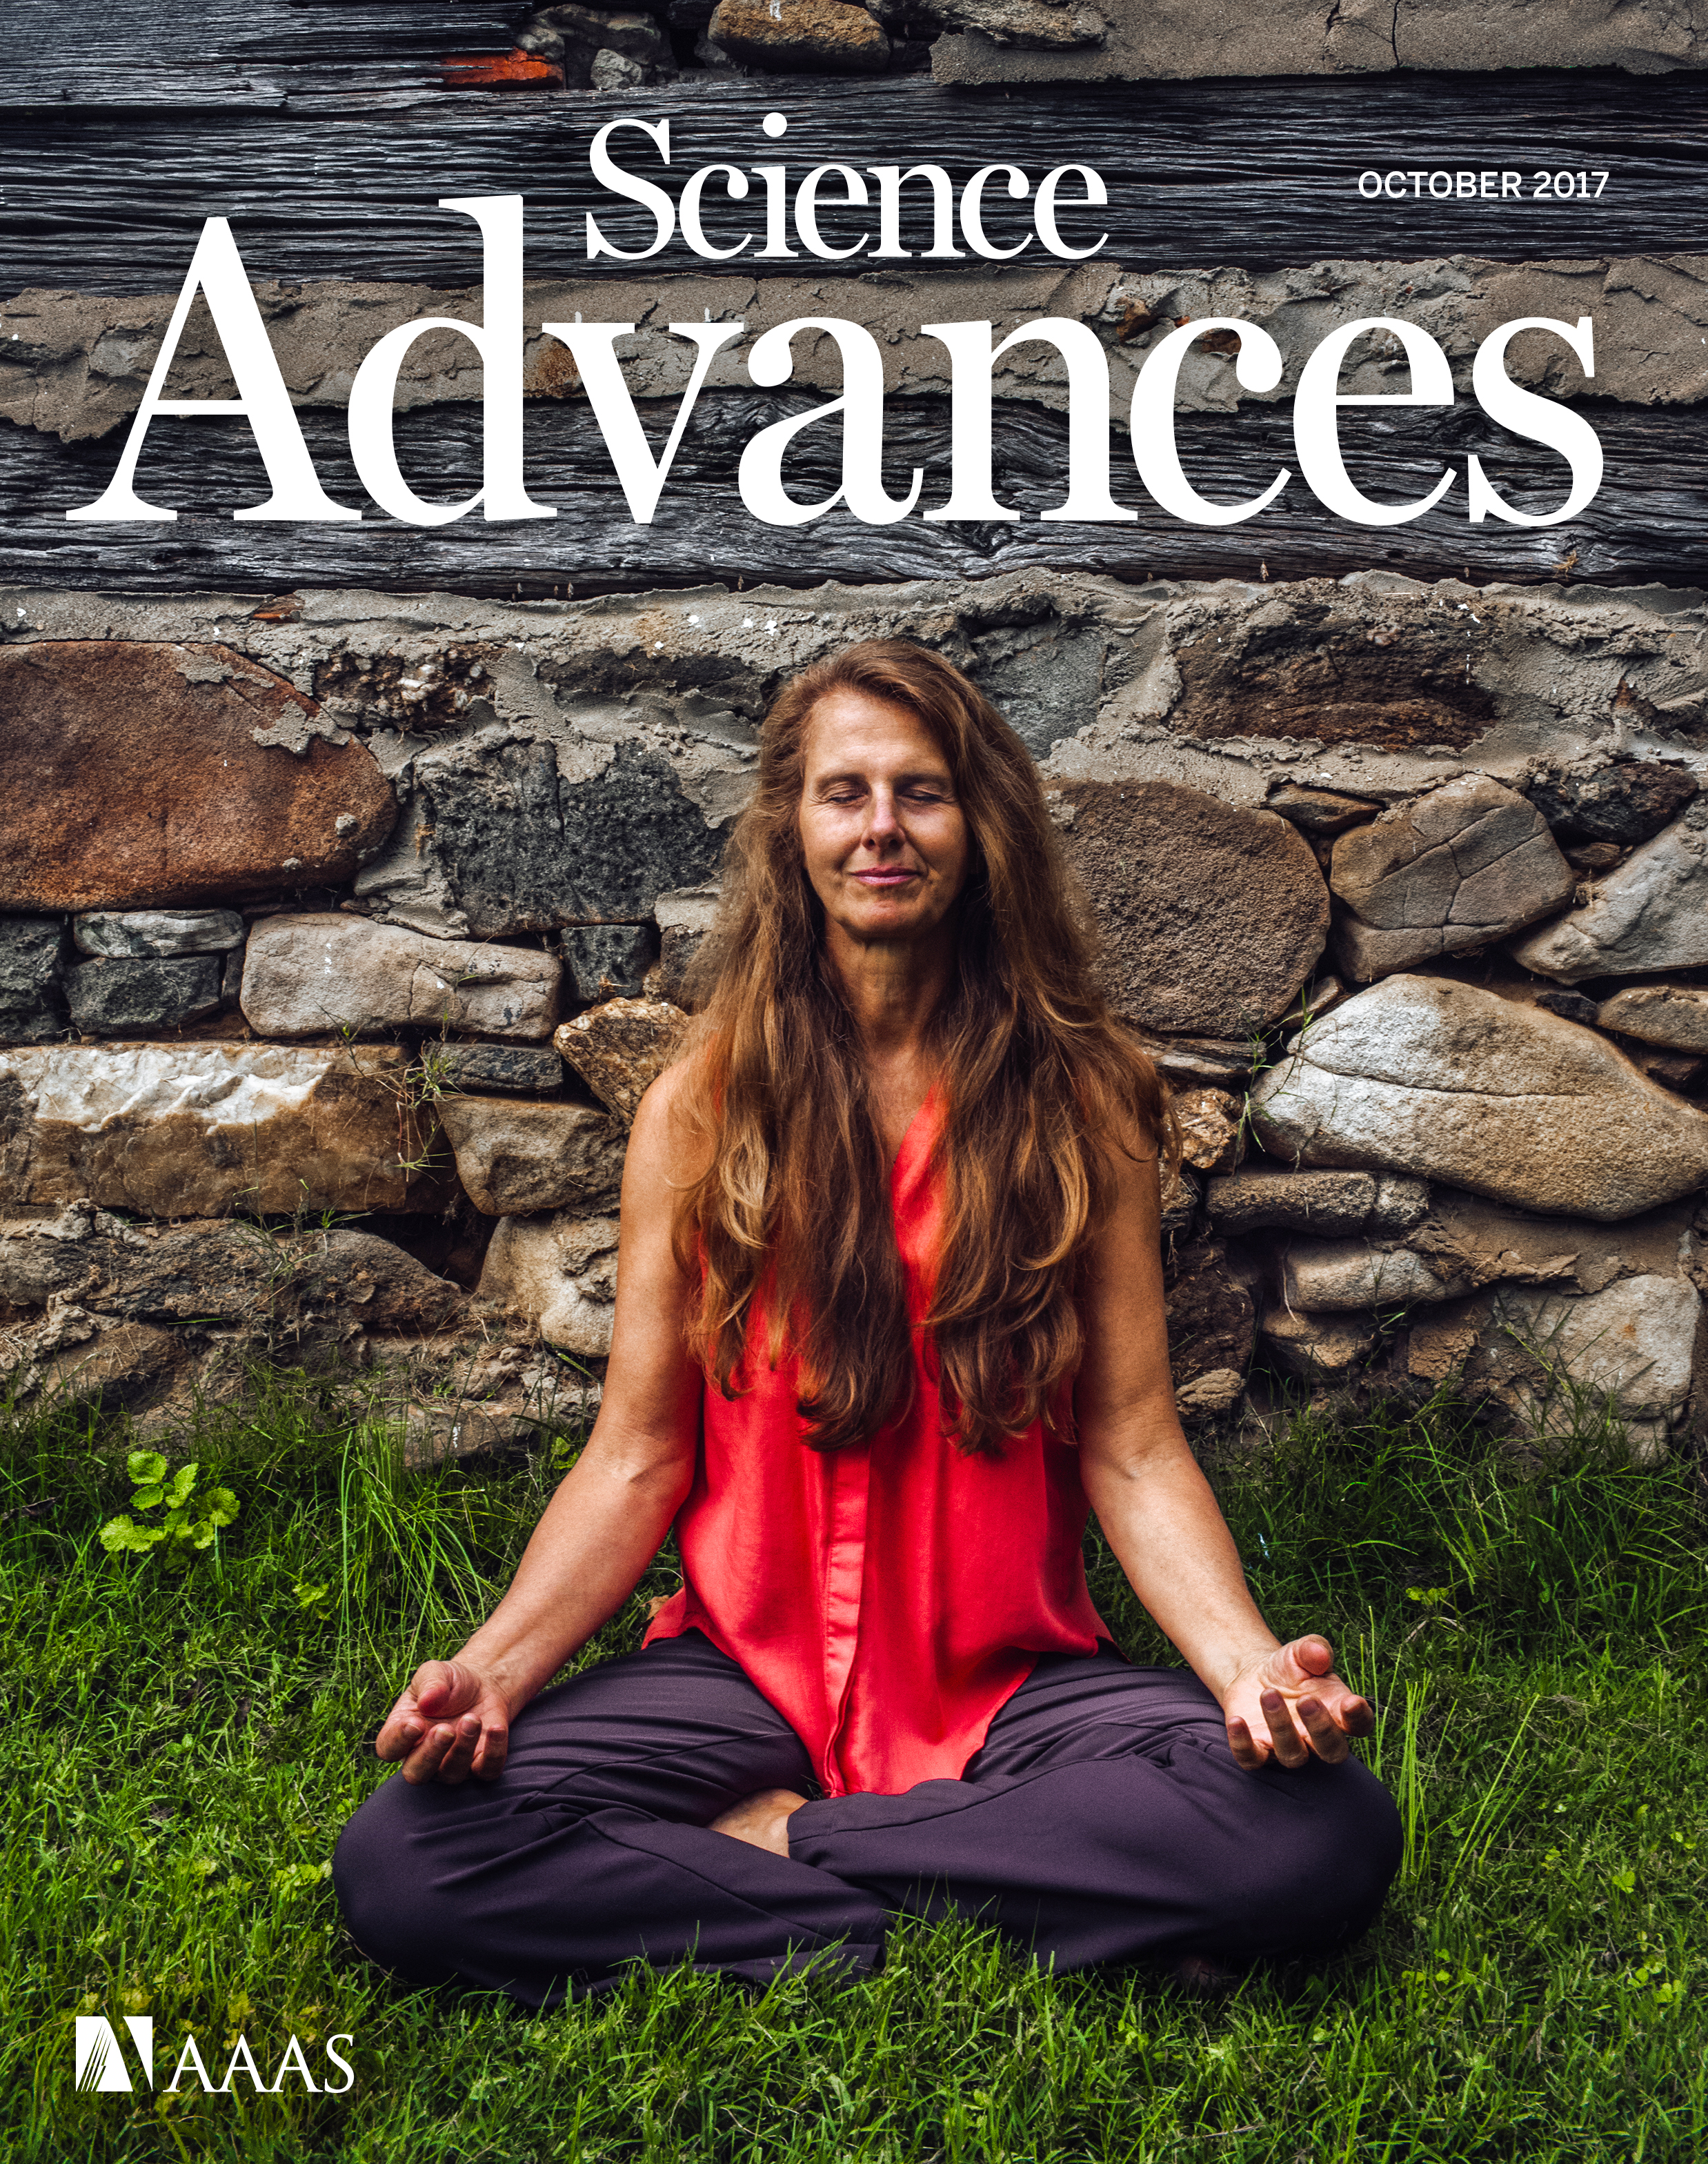 Dr. Deborah Norris , Founder of The Mindfulness Center, graces the cover of  Science Advances Magazine.